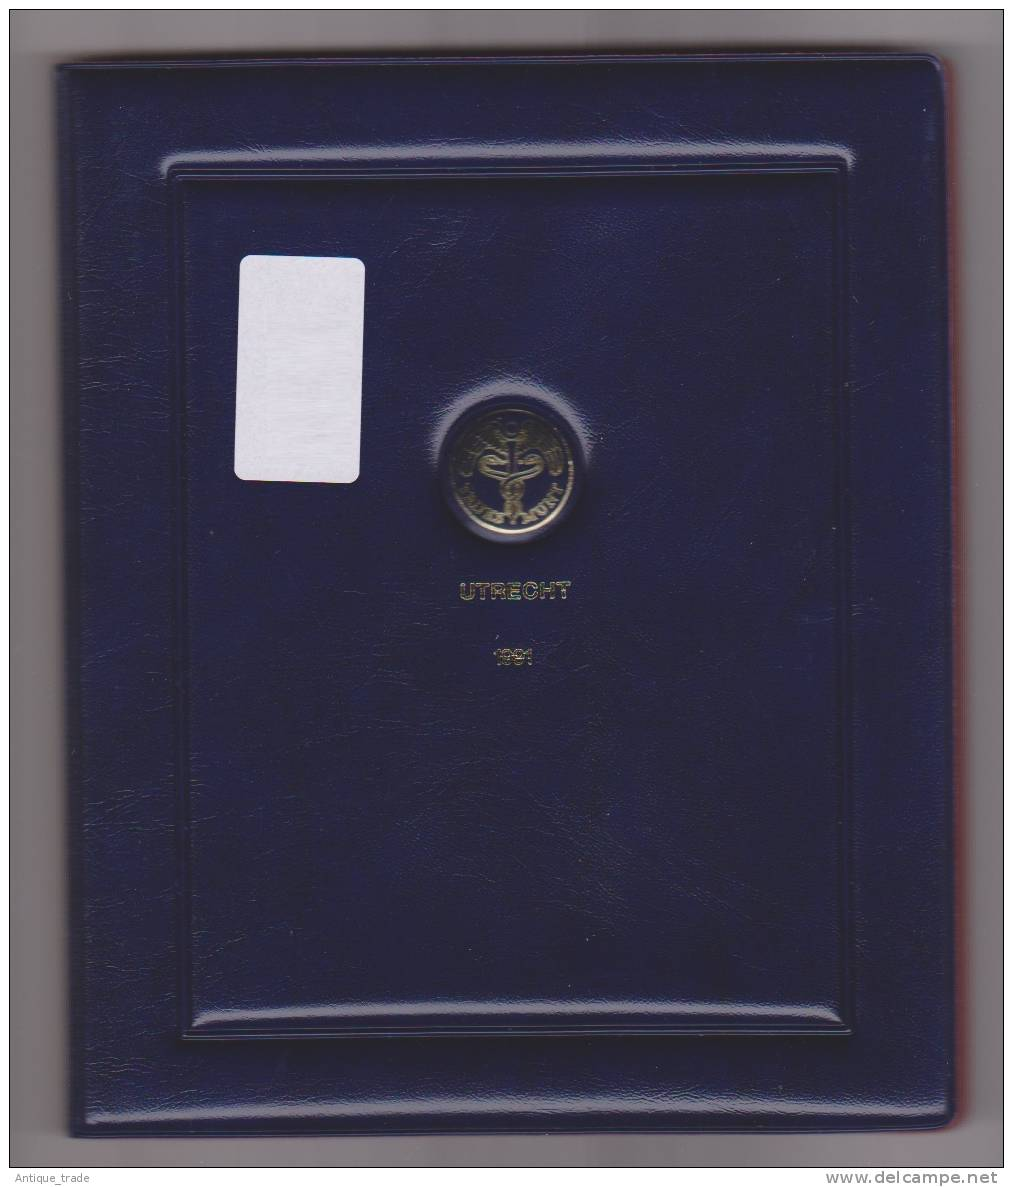 PAYS-BAS / NETHERLANDS : KM #PS37 -  6-coins & Medal Year Set (1991) PROOF In Official Folder - [ 9] Mint Sets & Proof Sets